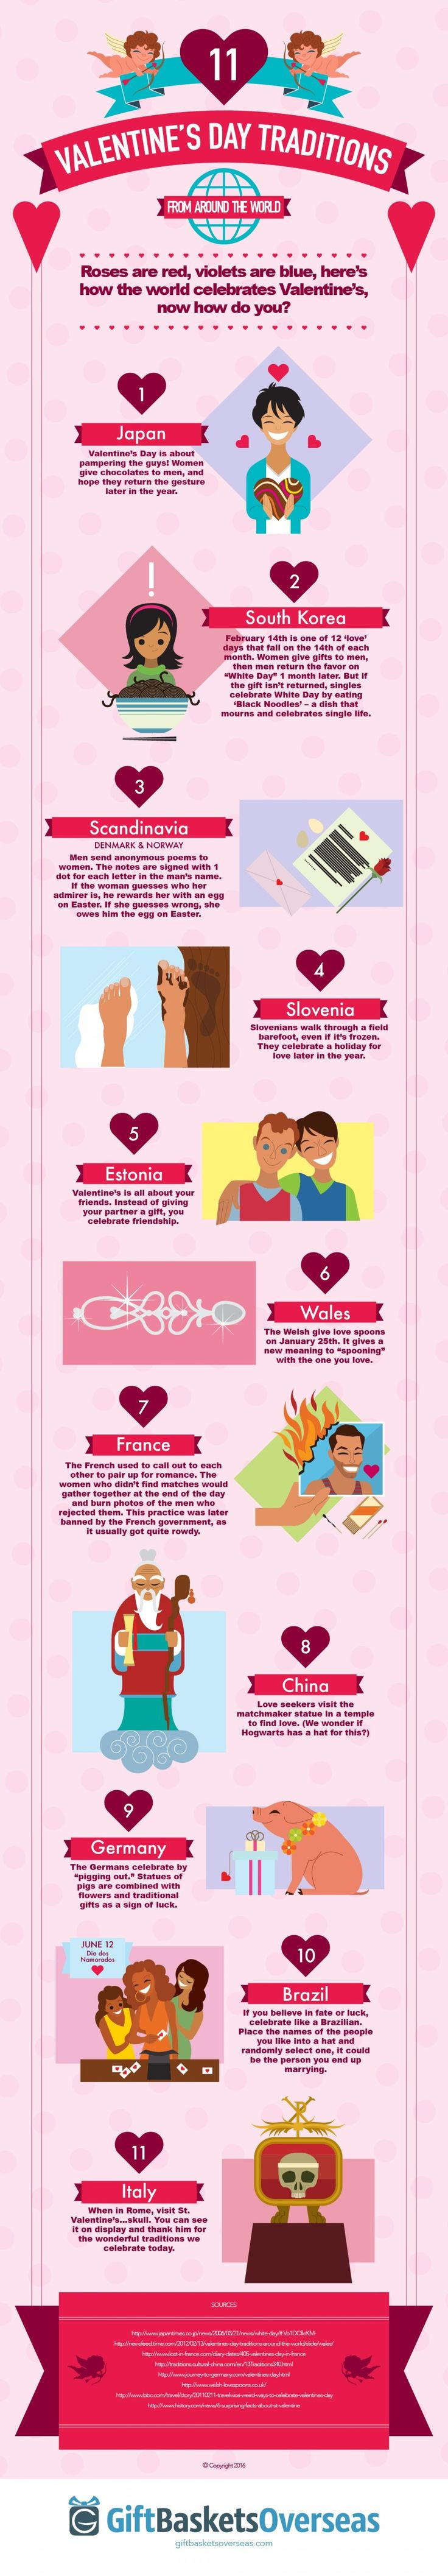 A Guide on How People Celebrate Valentine's Day Around the World Infographic